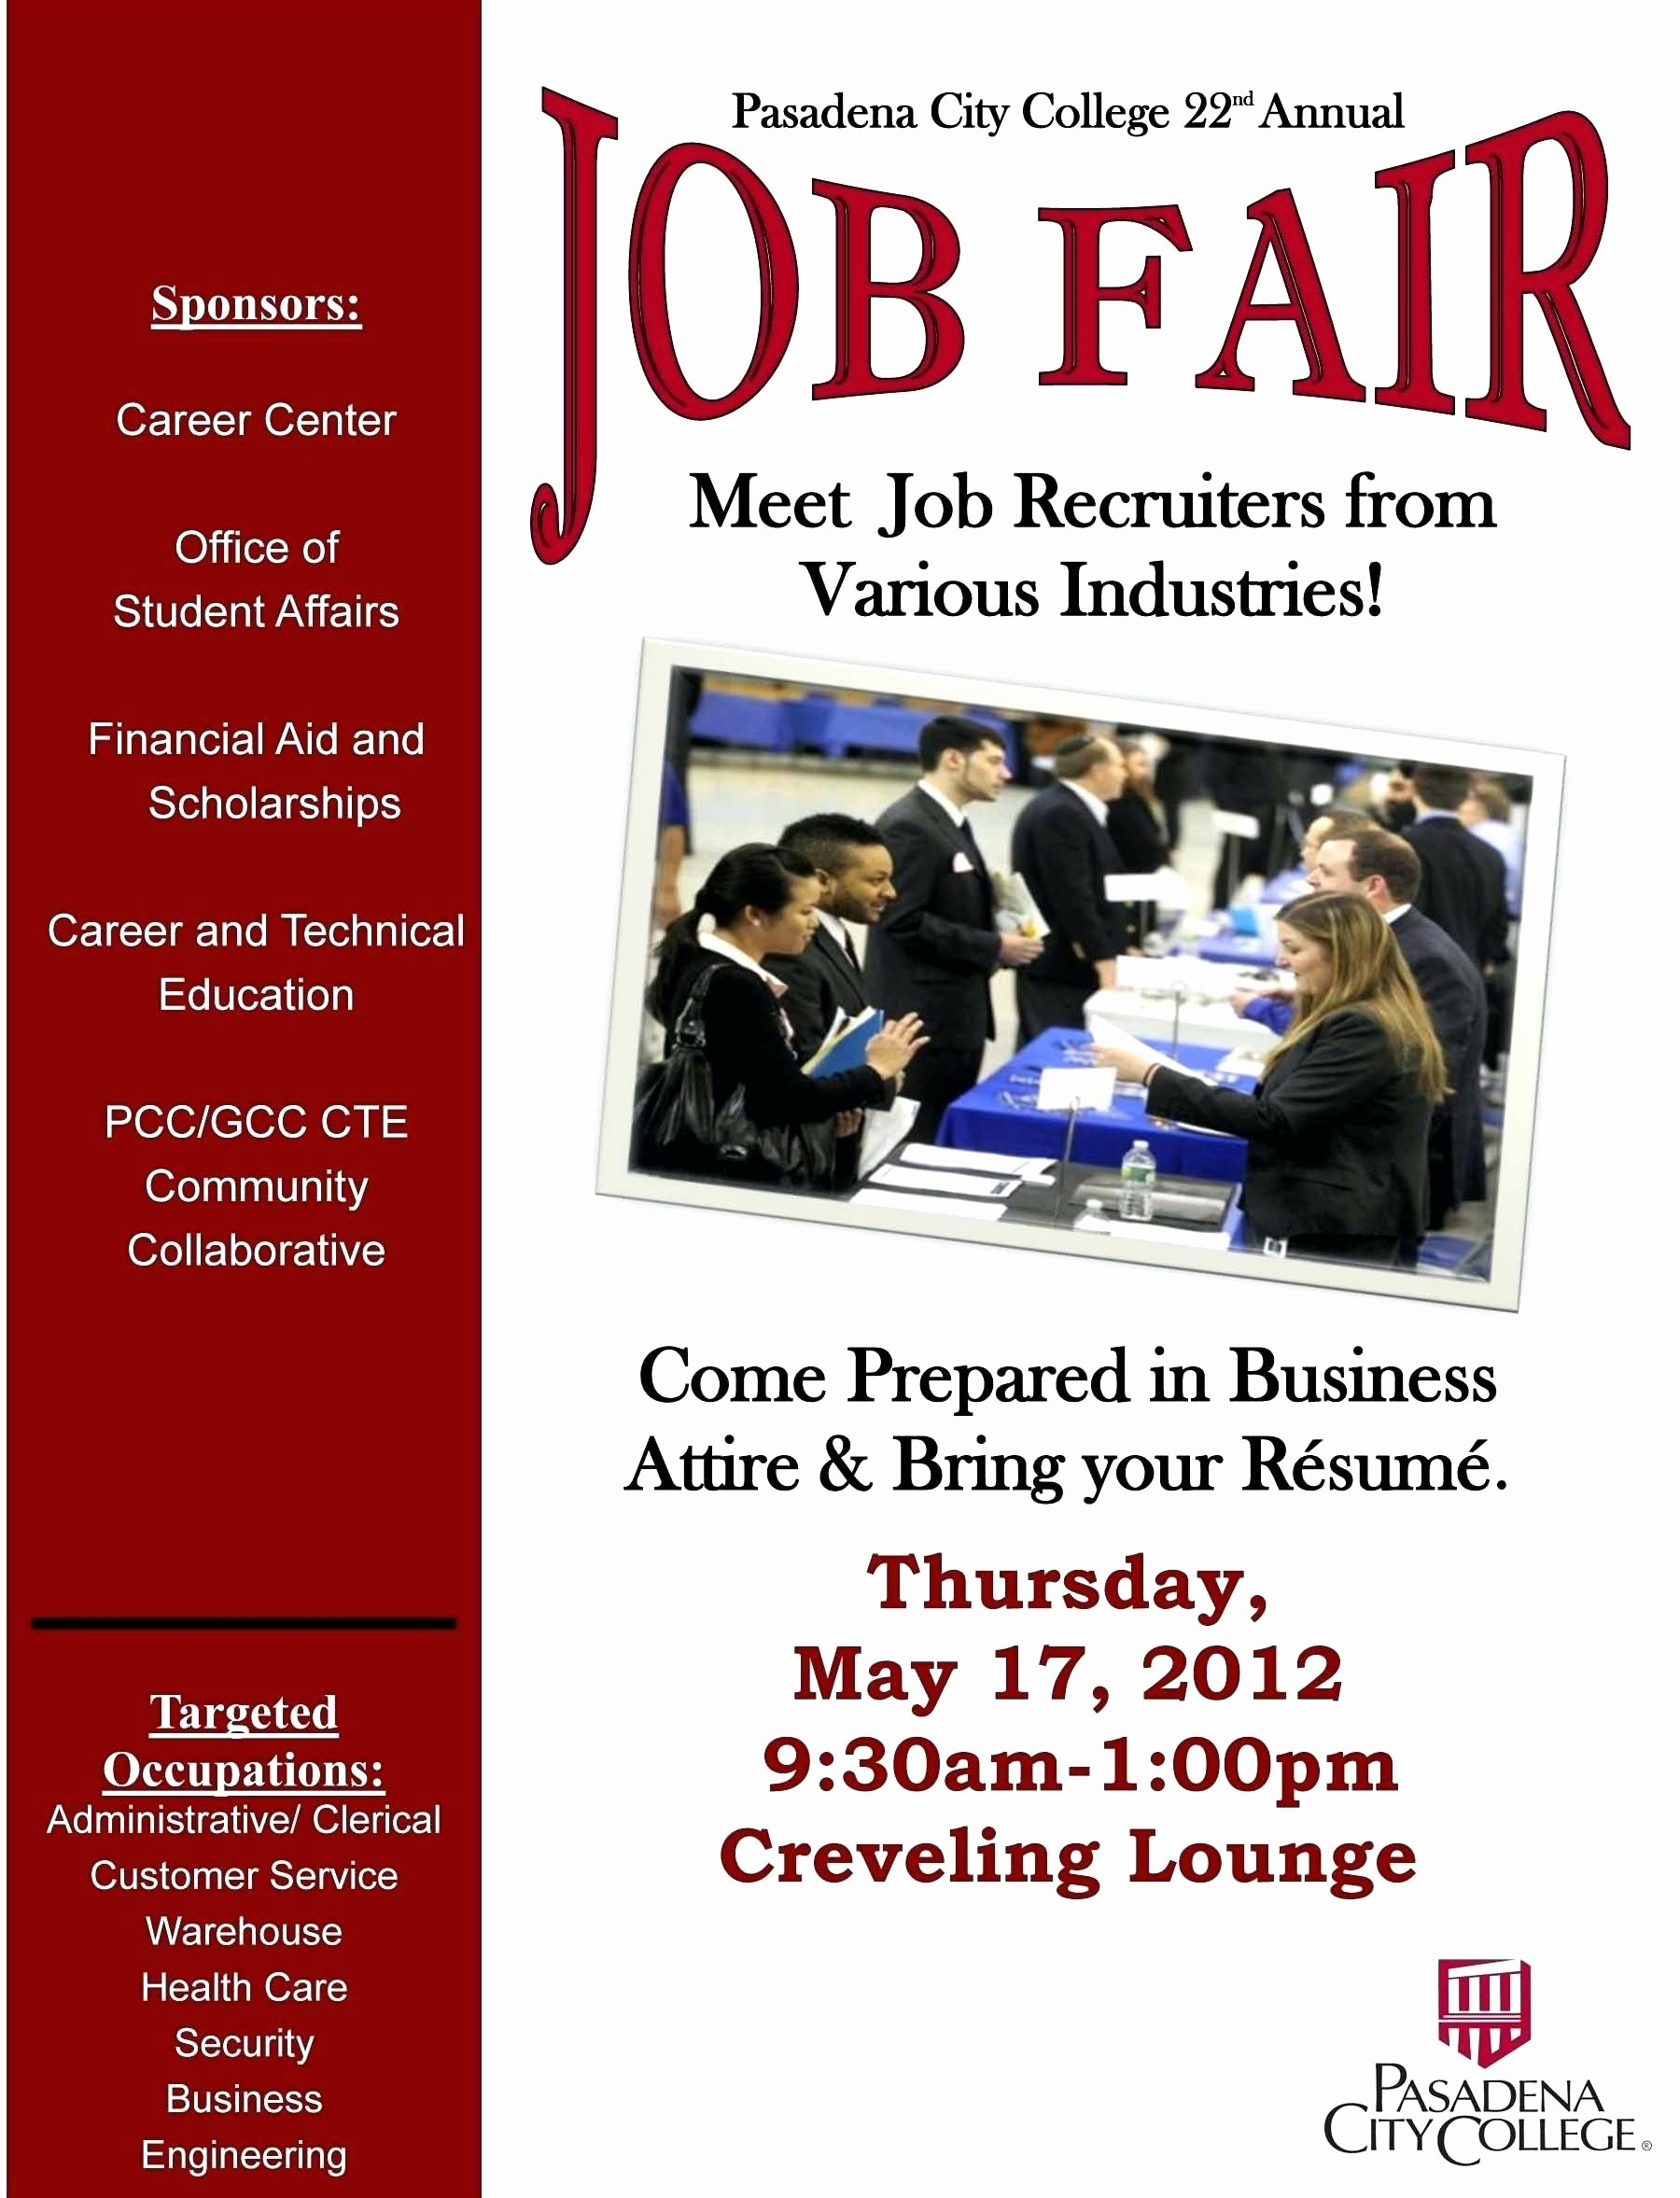 Job Fair Flyer Template Free Inspirational Sample Job Fair Flyers